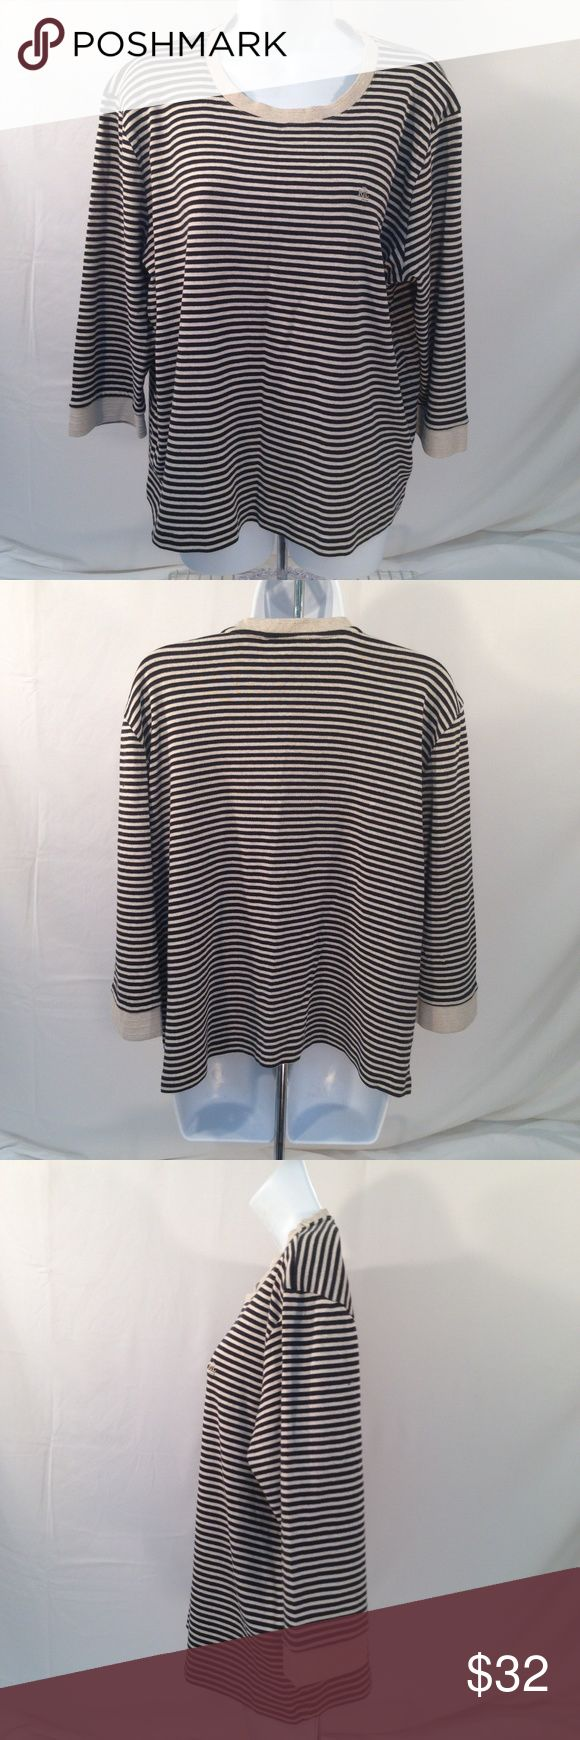 Lauren Ralph Lauren Womens Plus Size 3X Top Lauren Ralph Lauren Womens Plus Size 3X Cream Black Striped Top Logo 3/4 Sleeve Tan Knit Trim on beck and sleeves LRL Logo on Left Chest 100% Cotton Measurements are laid flat and approximate: Bust-26 Length-24 Sleeve-18 Lauren Ralph Lauren Womens Plus Size 3X Cream Black Striped Top Logo 3/4 Sleeve Lauren Ralph Lauren Tops